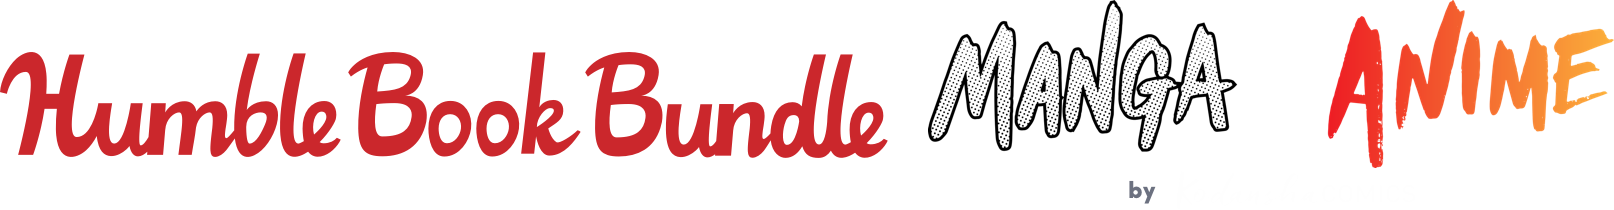 Humble Manga Bundle: Manga to Anime by Kodansha